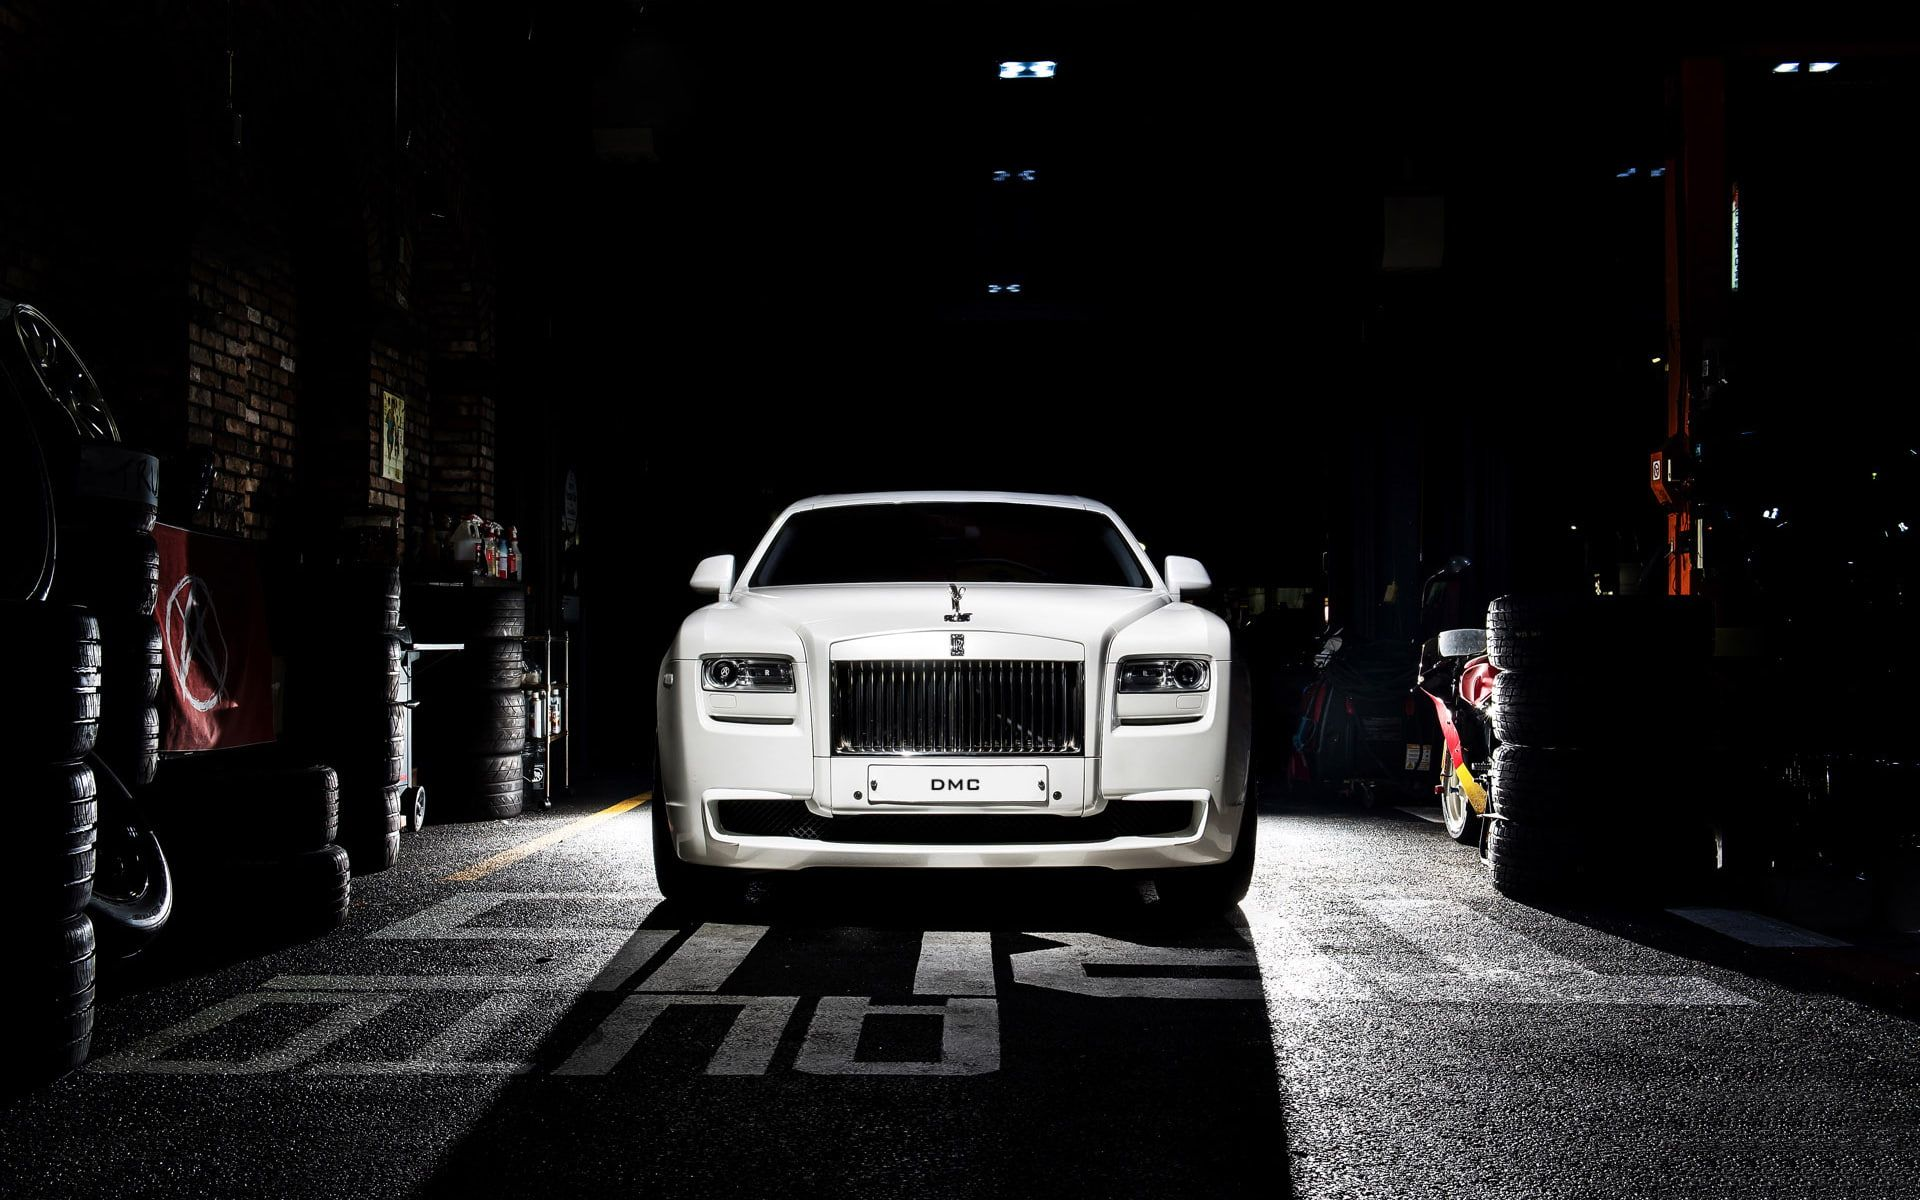 Rolls Royce Ghost 2016 Saranghae 1080p Wallpaper Hdwallpaper Desktop In 2020 Rolls Royce Rolls Royce Wallpaper Royce